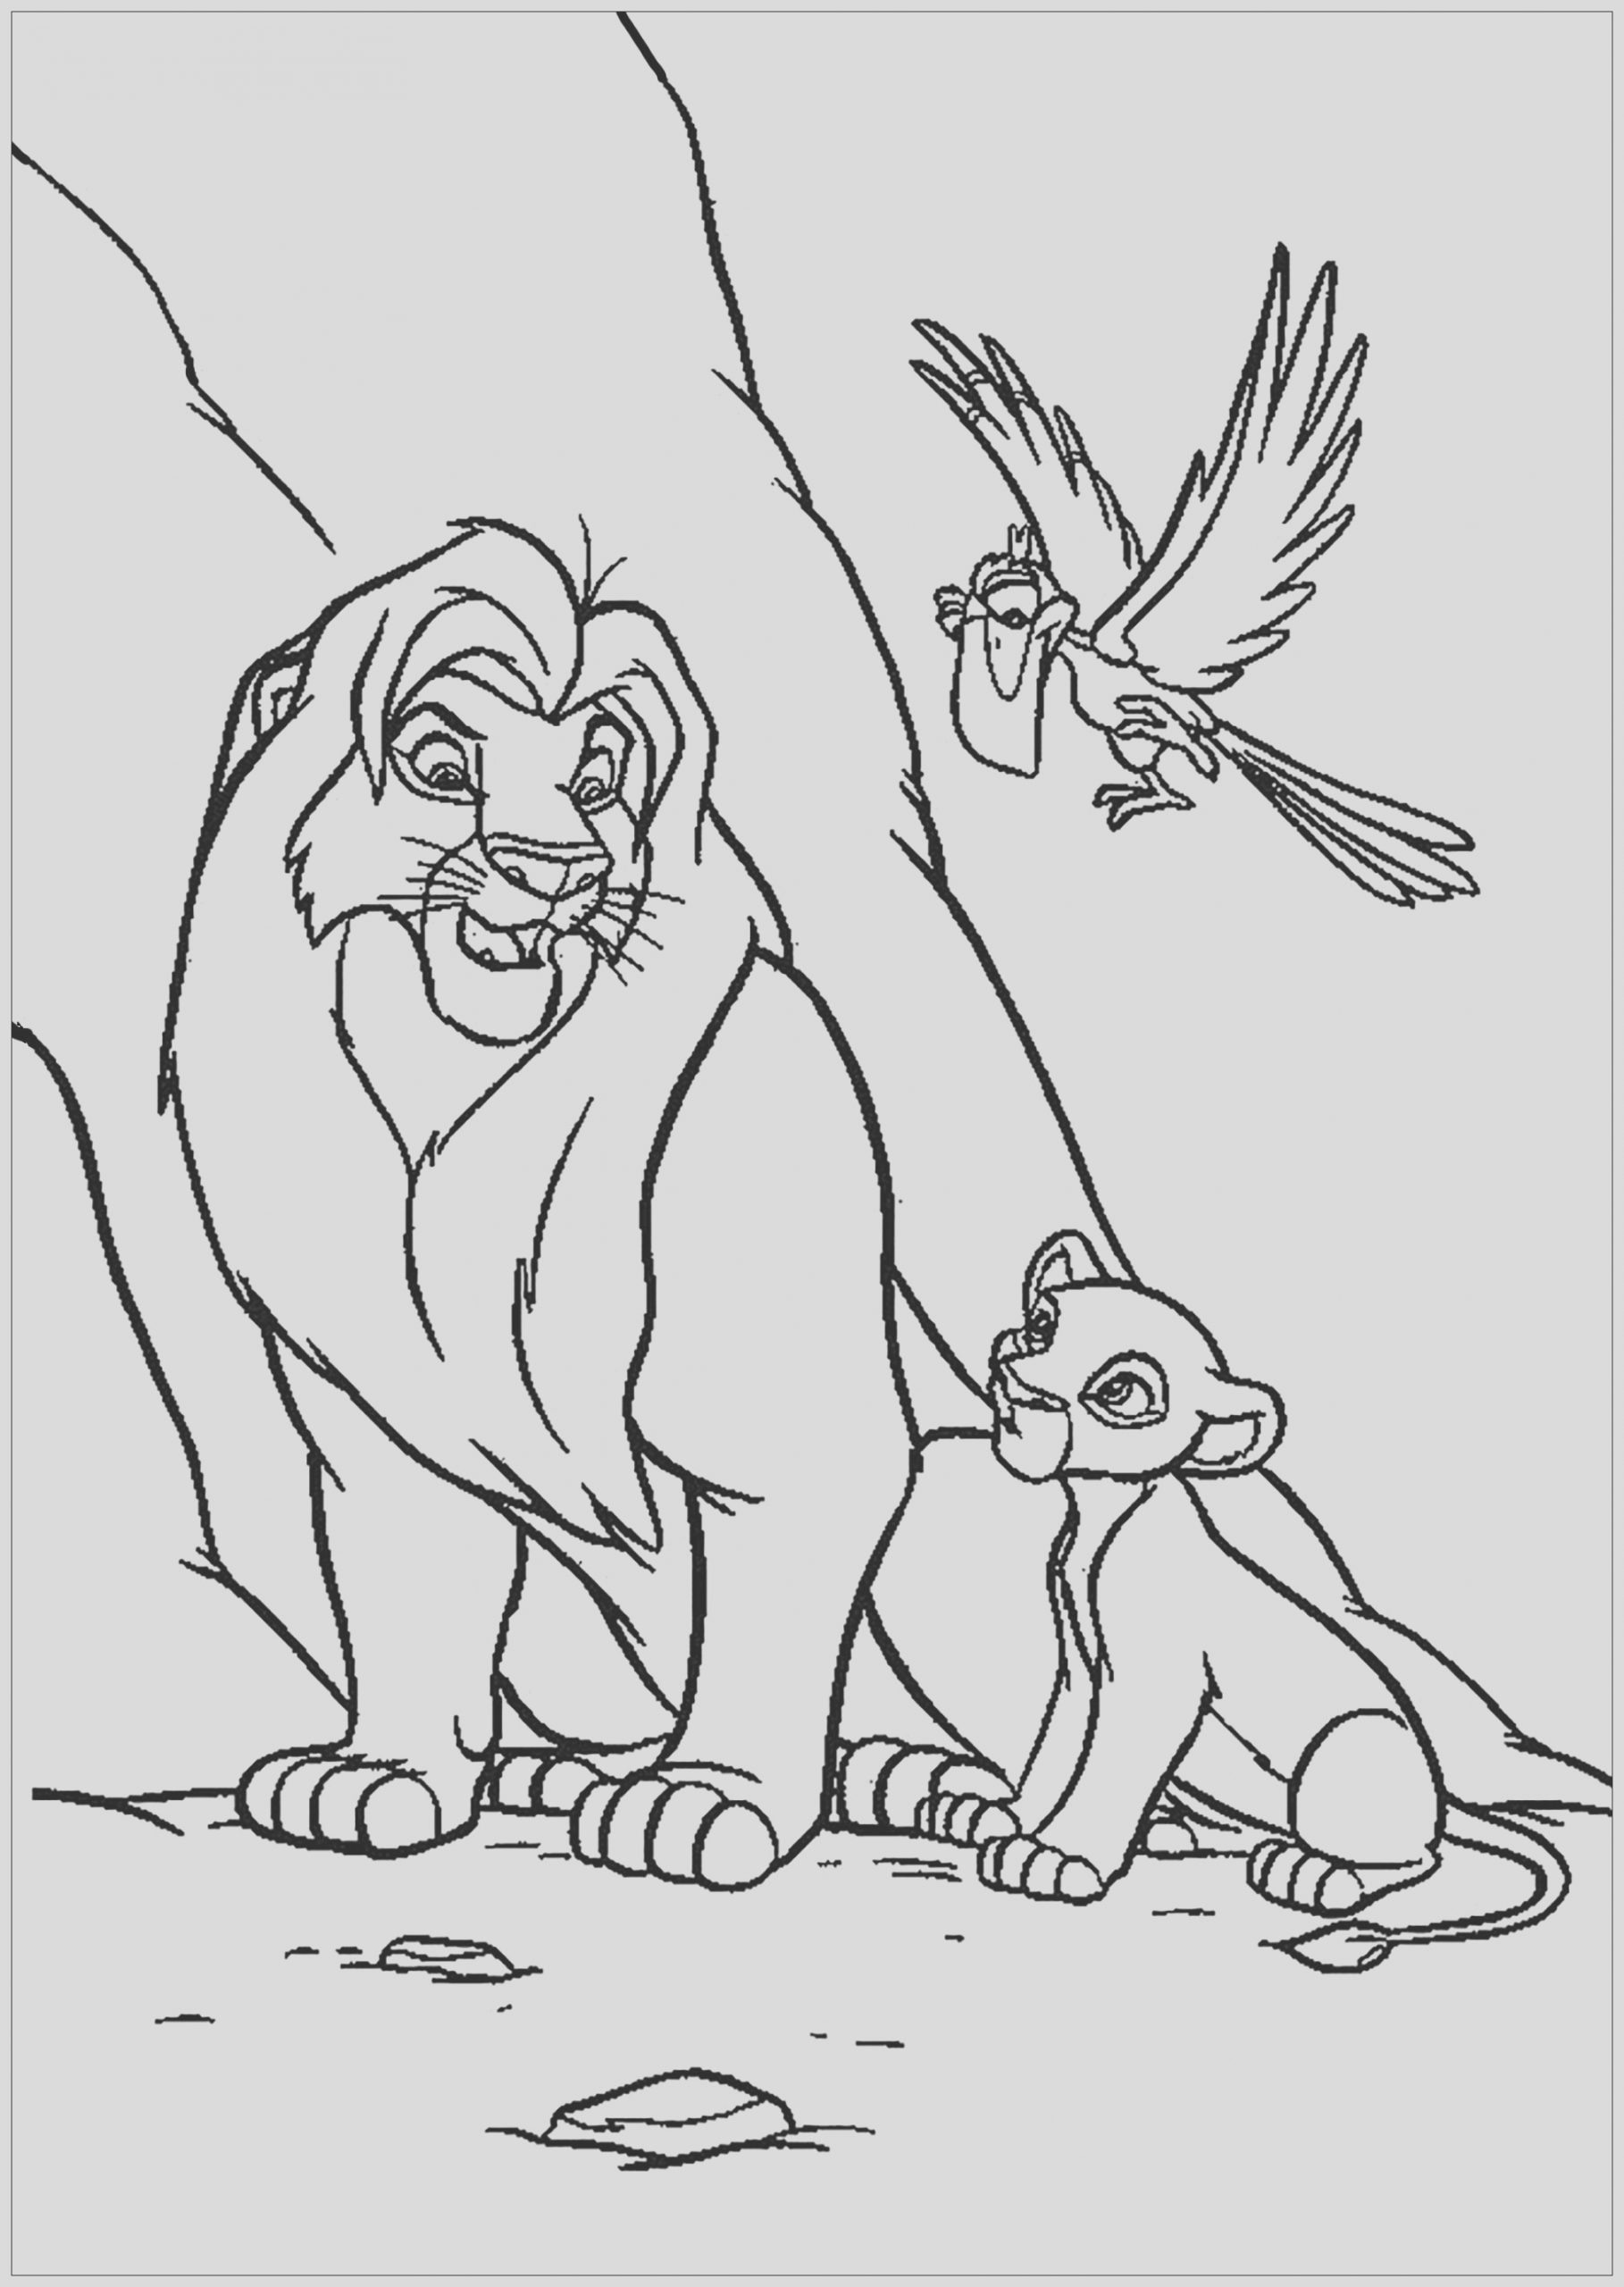 image=the lion king coloring pages for children the lion king 1